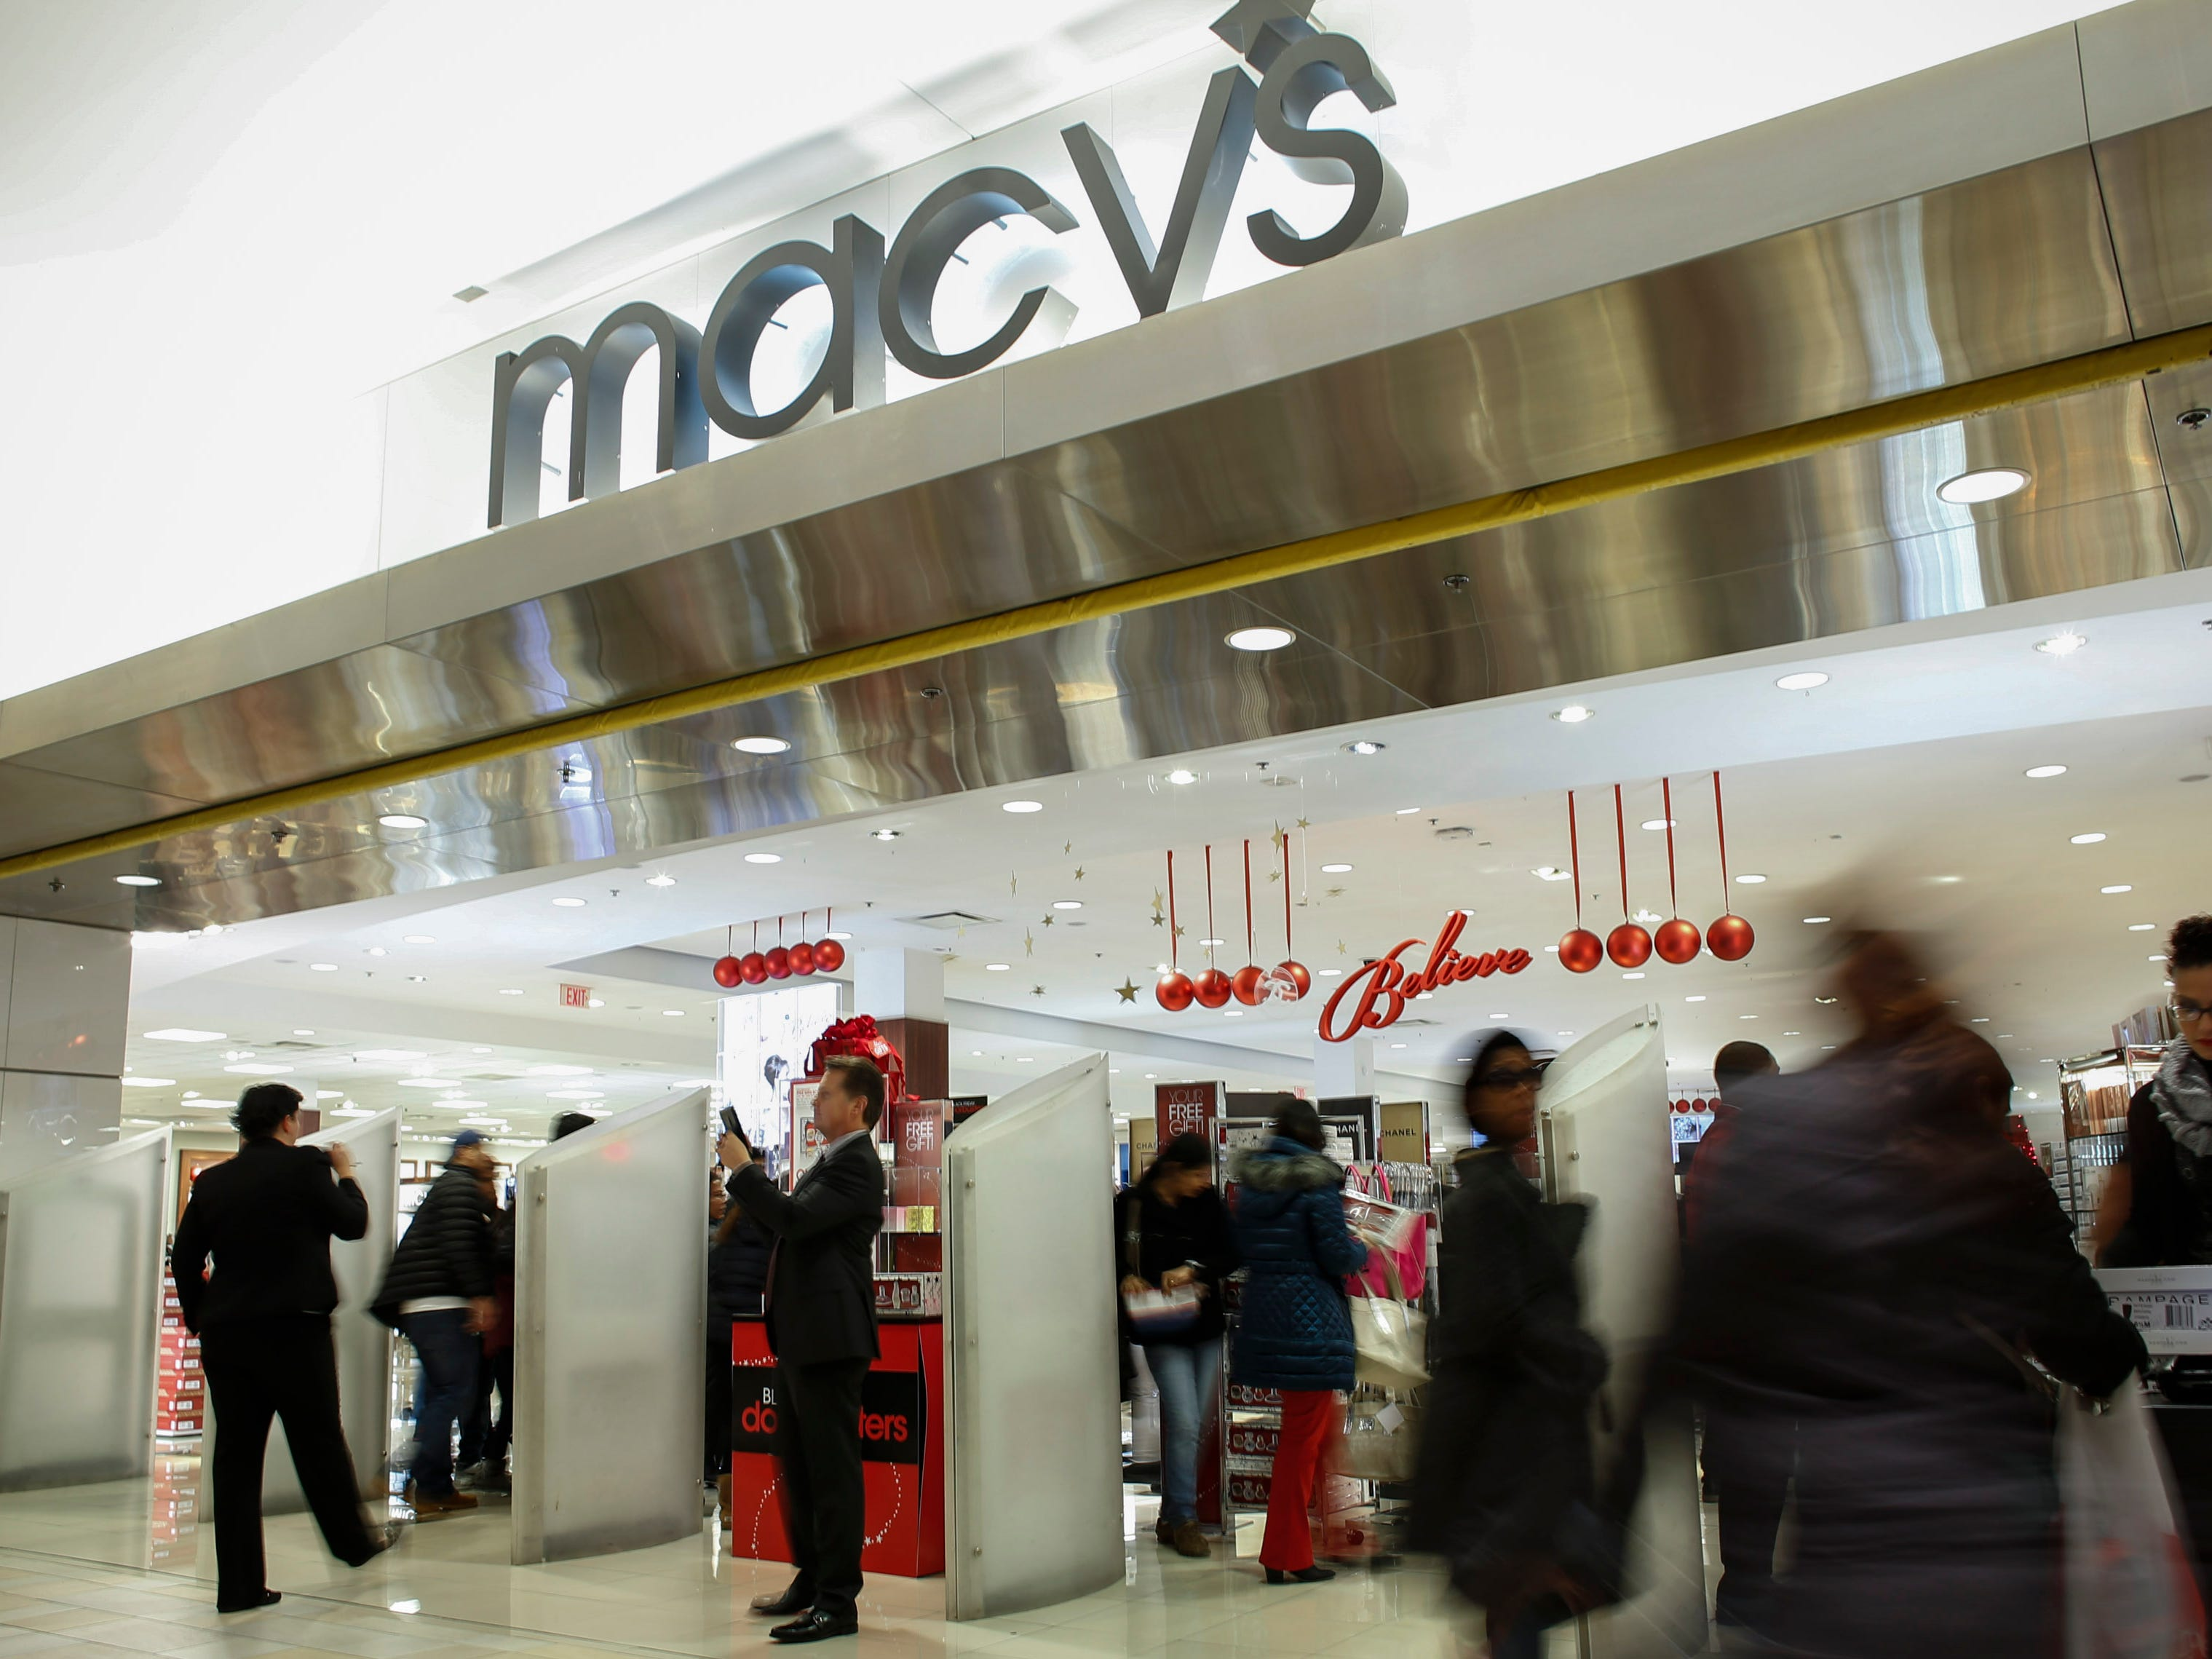 Macy's, hiring 190. The retailer is hiring for positions ranging from cosmetic-sales representatives to retail-support staff. More info: macysjobs.com.